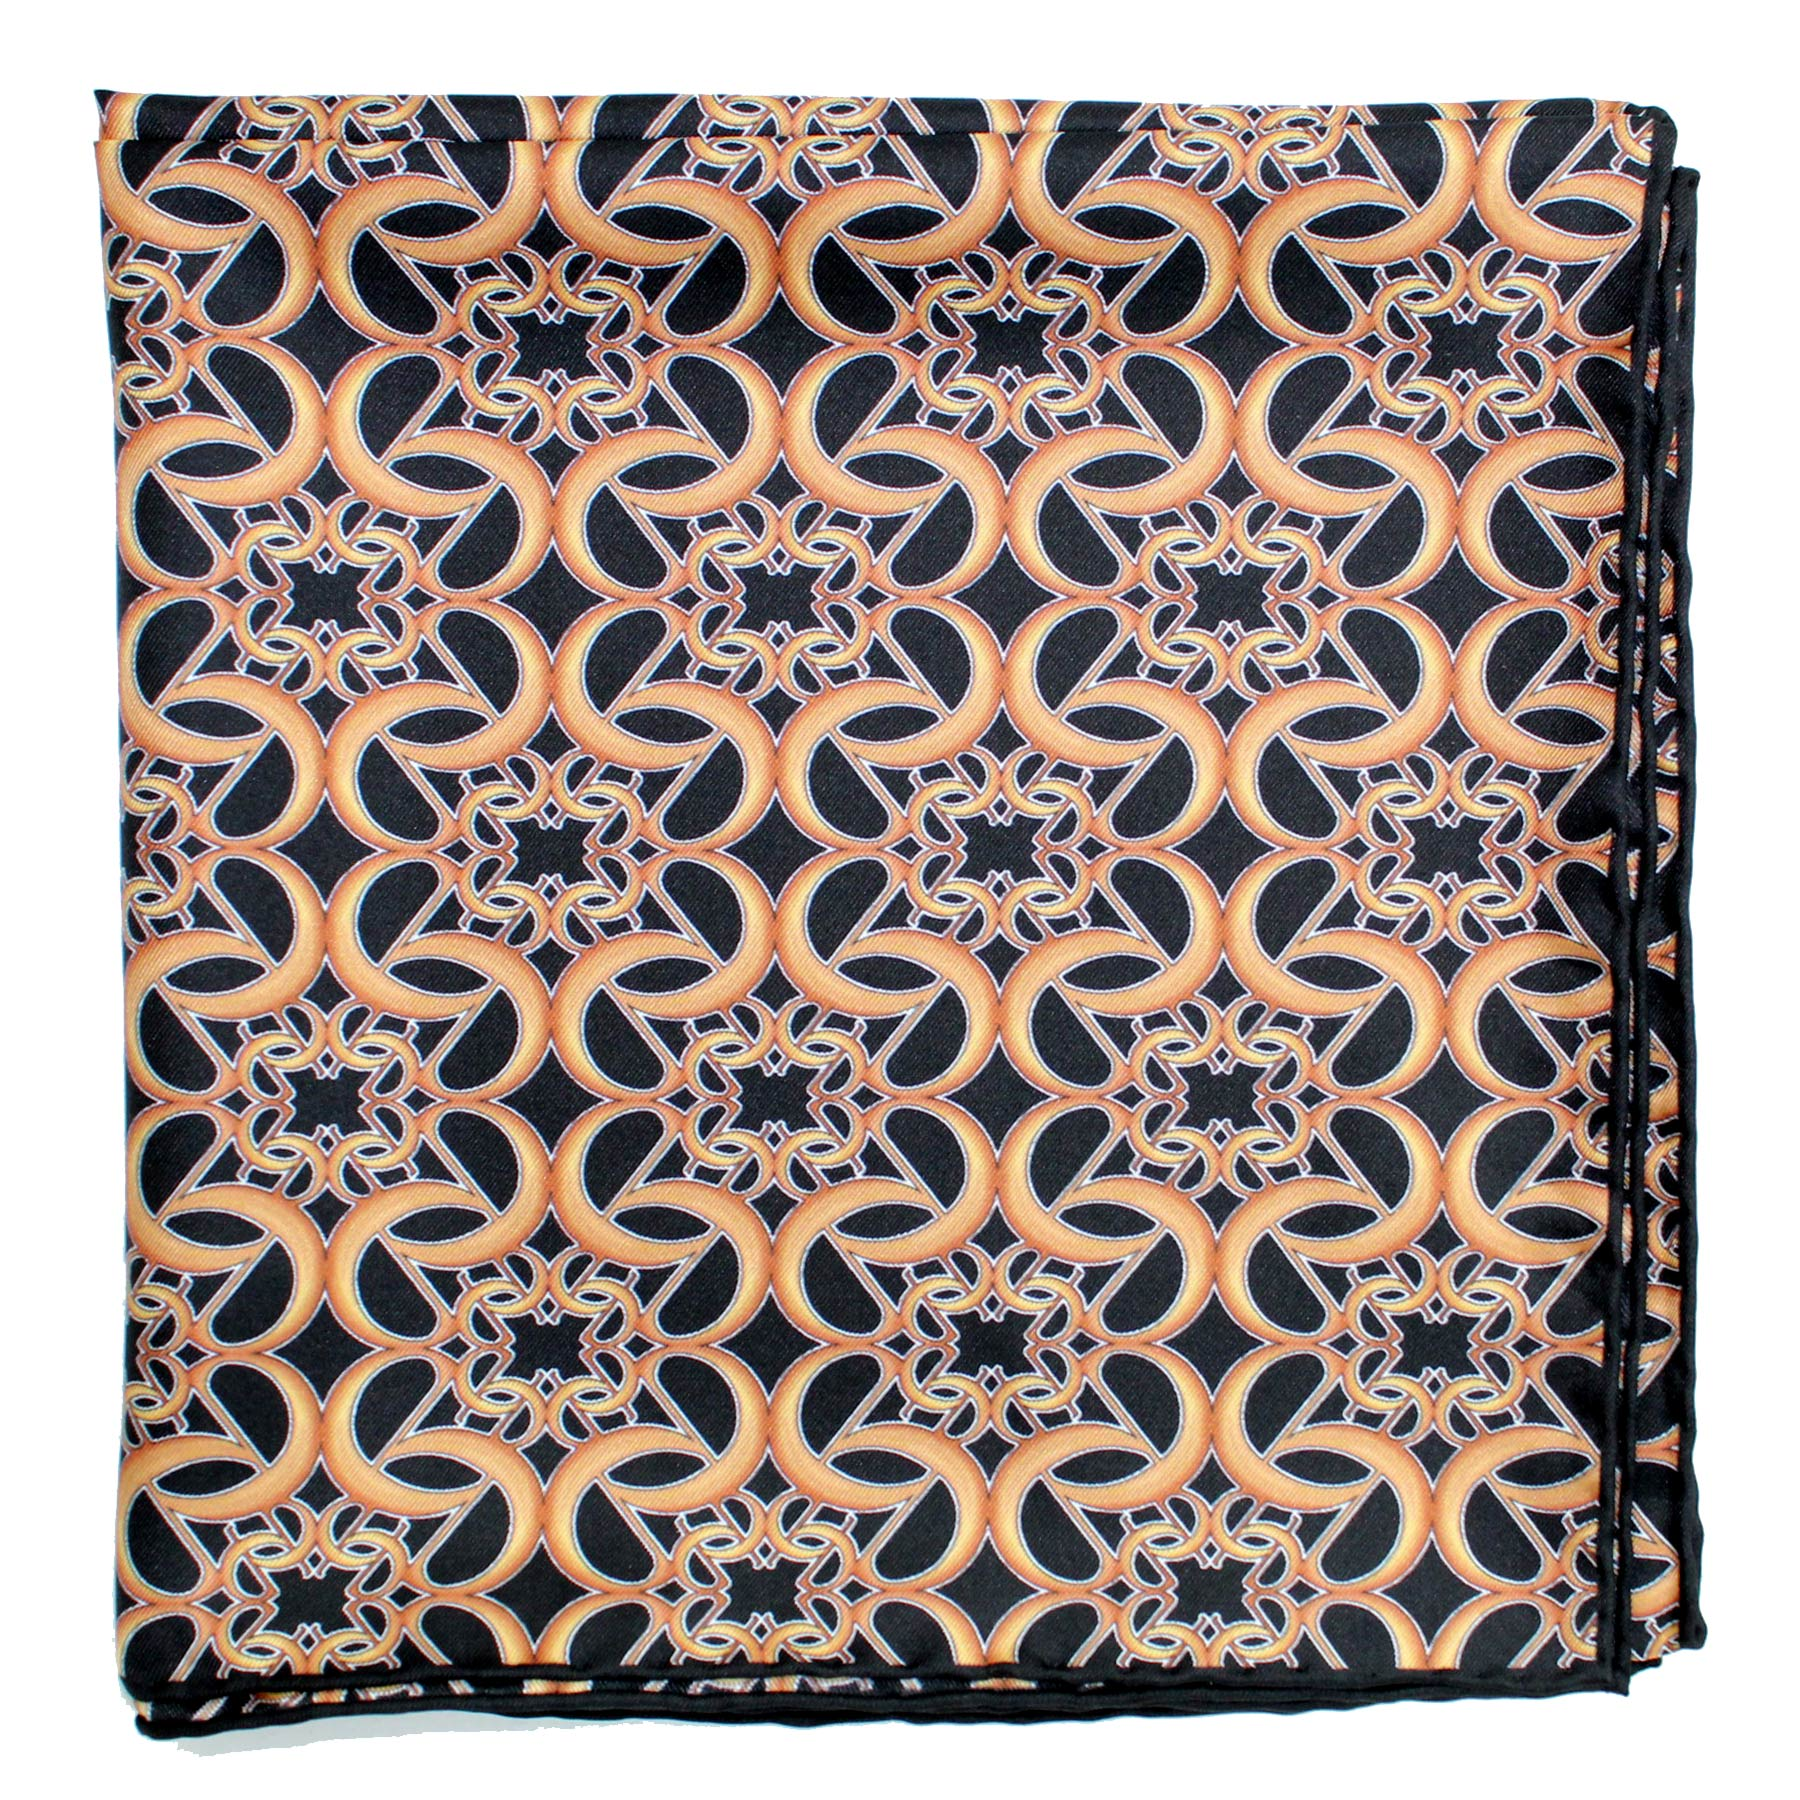 Elie Saab Scarf Black Brown-Gold - Large Twill Silk Square Scarf